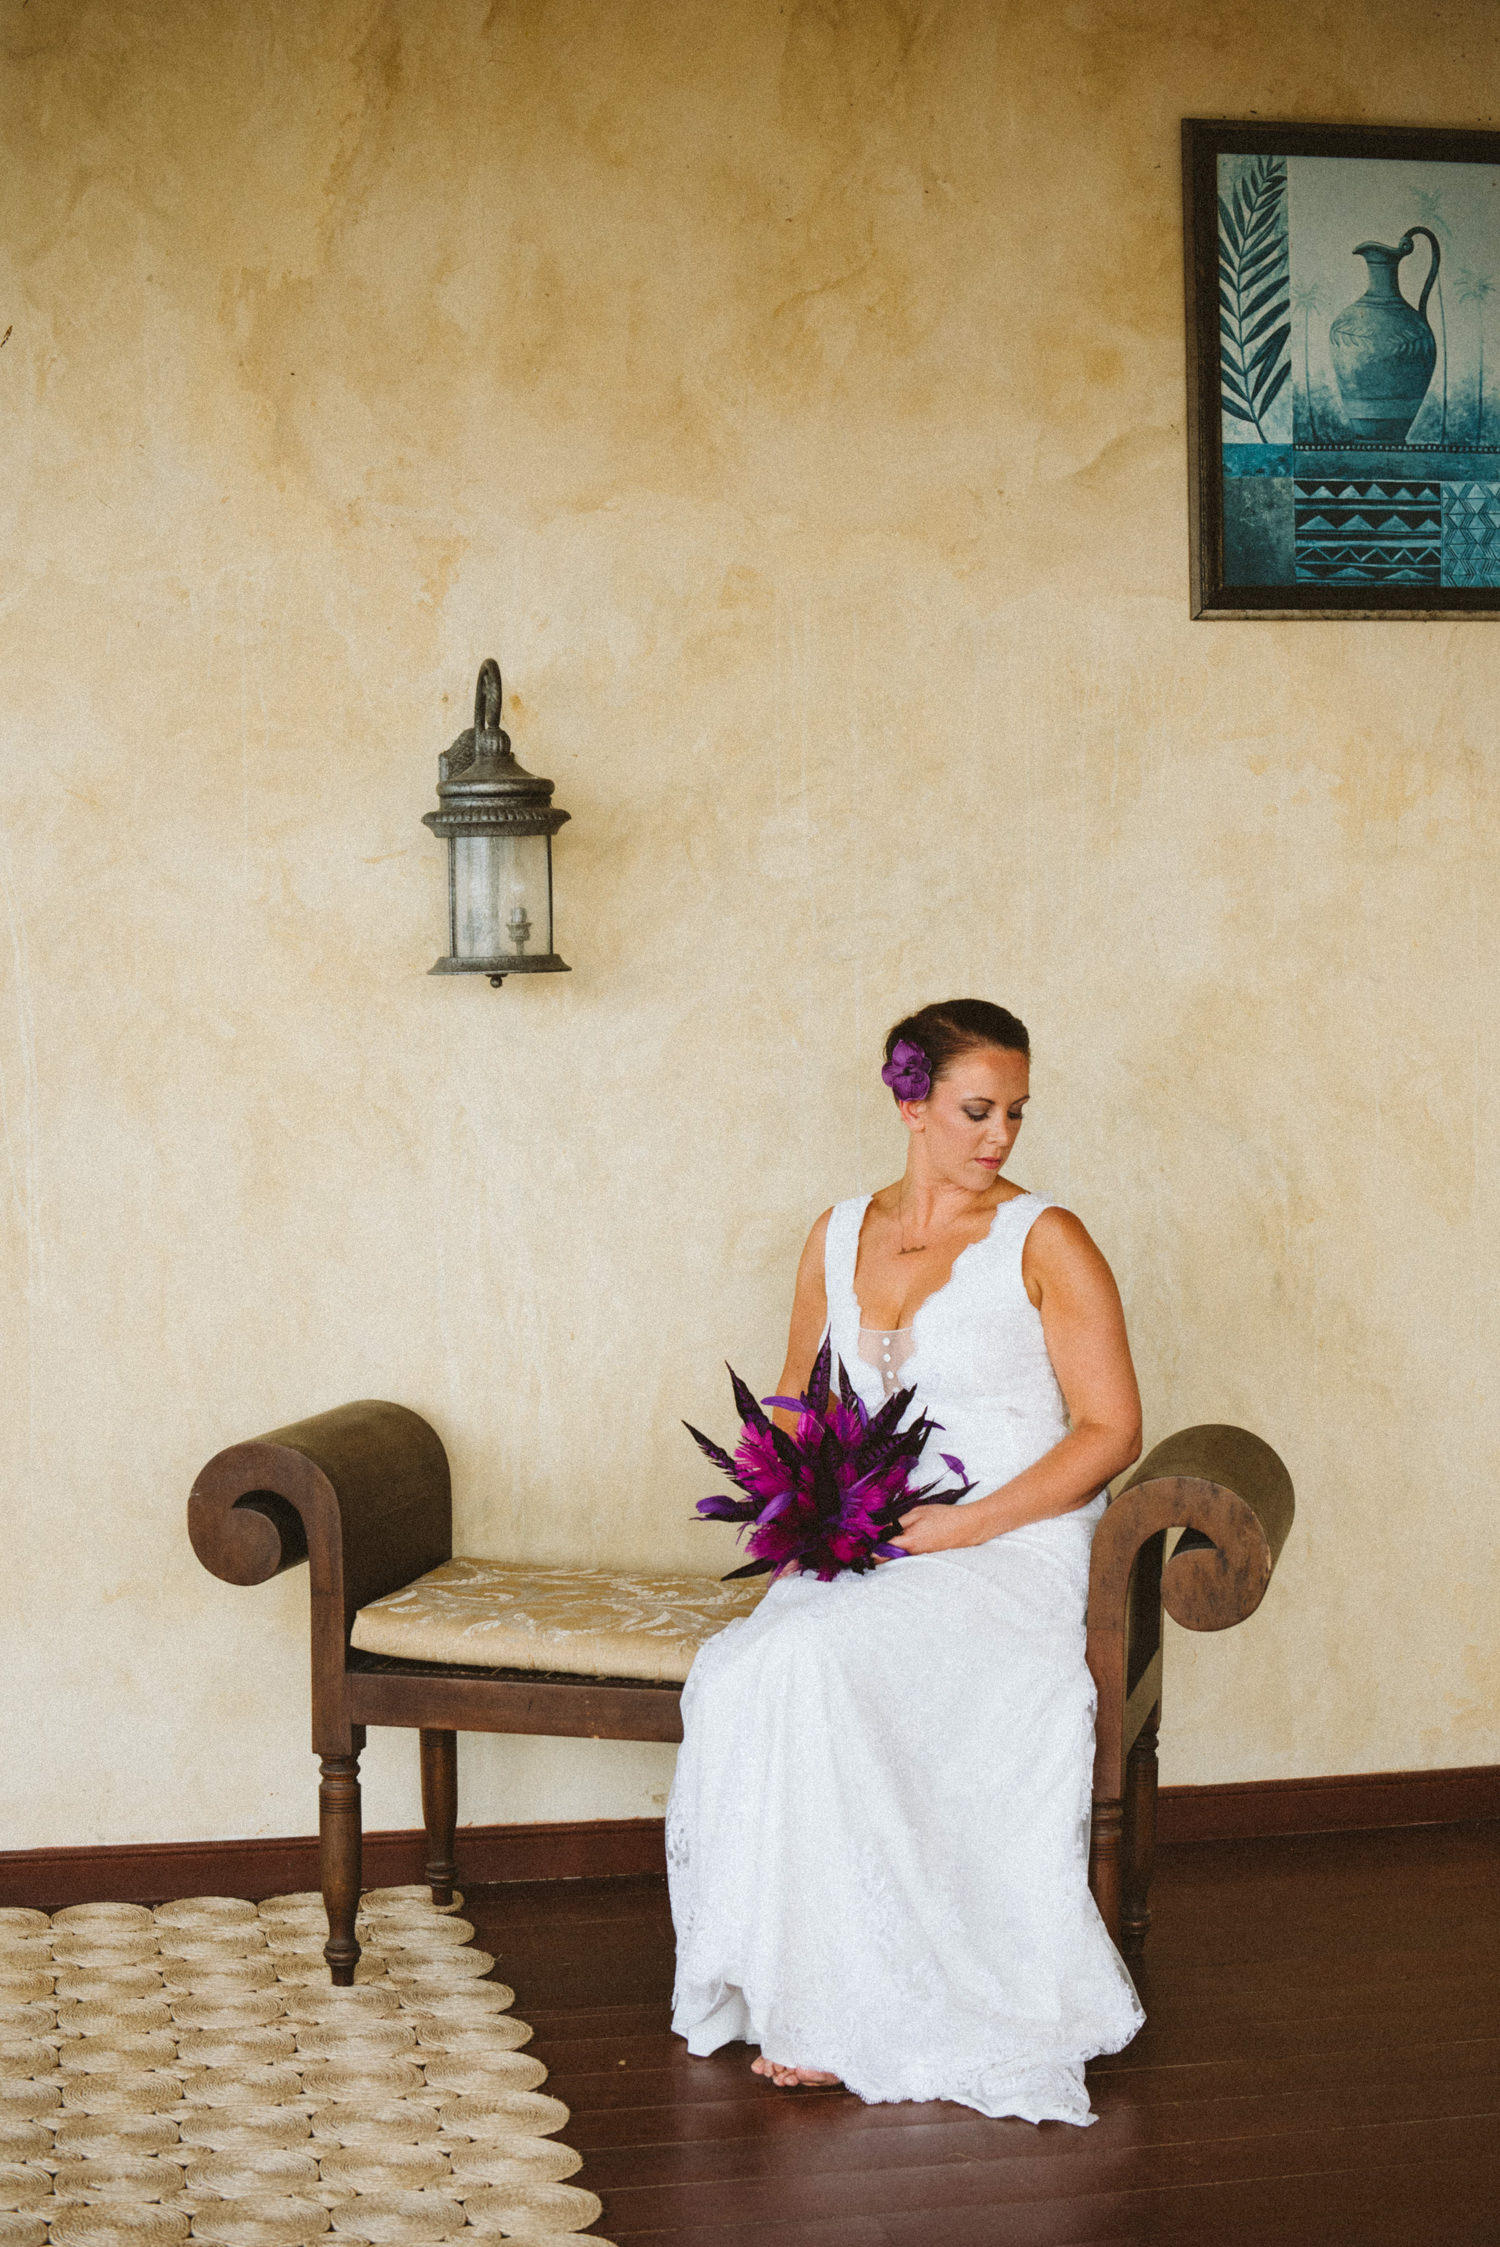 Bride pre-wedding Tobago wedding photographer Babb photo